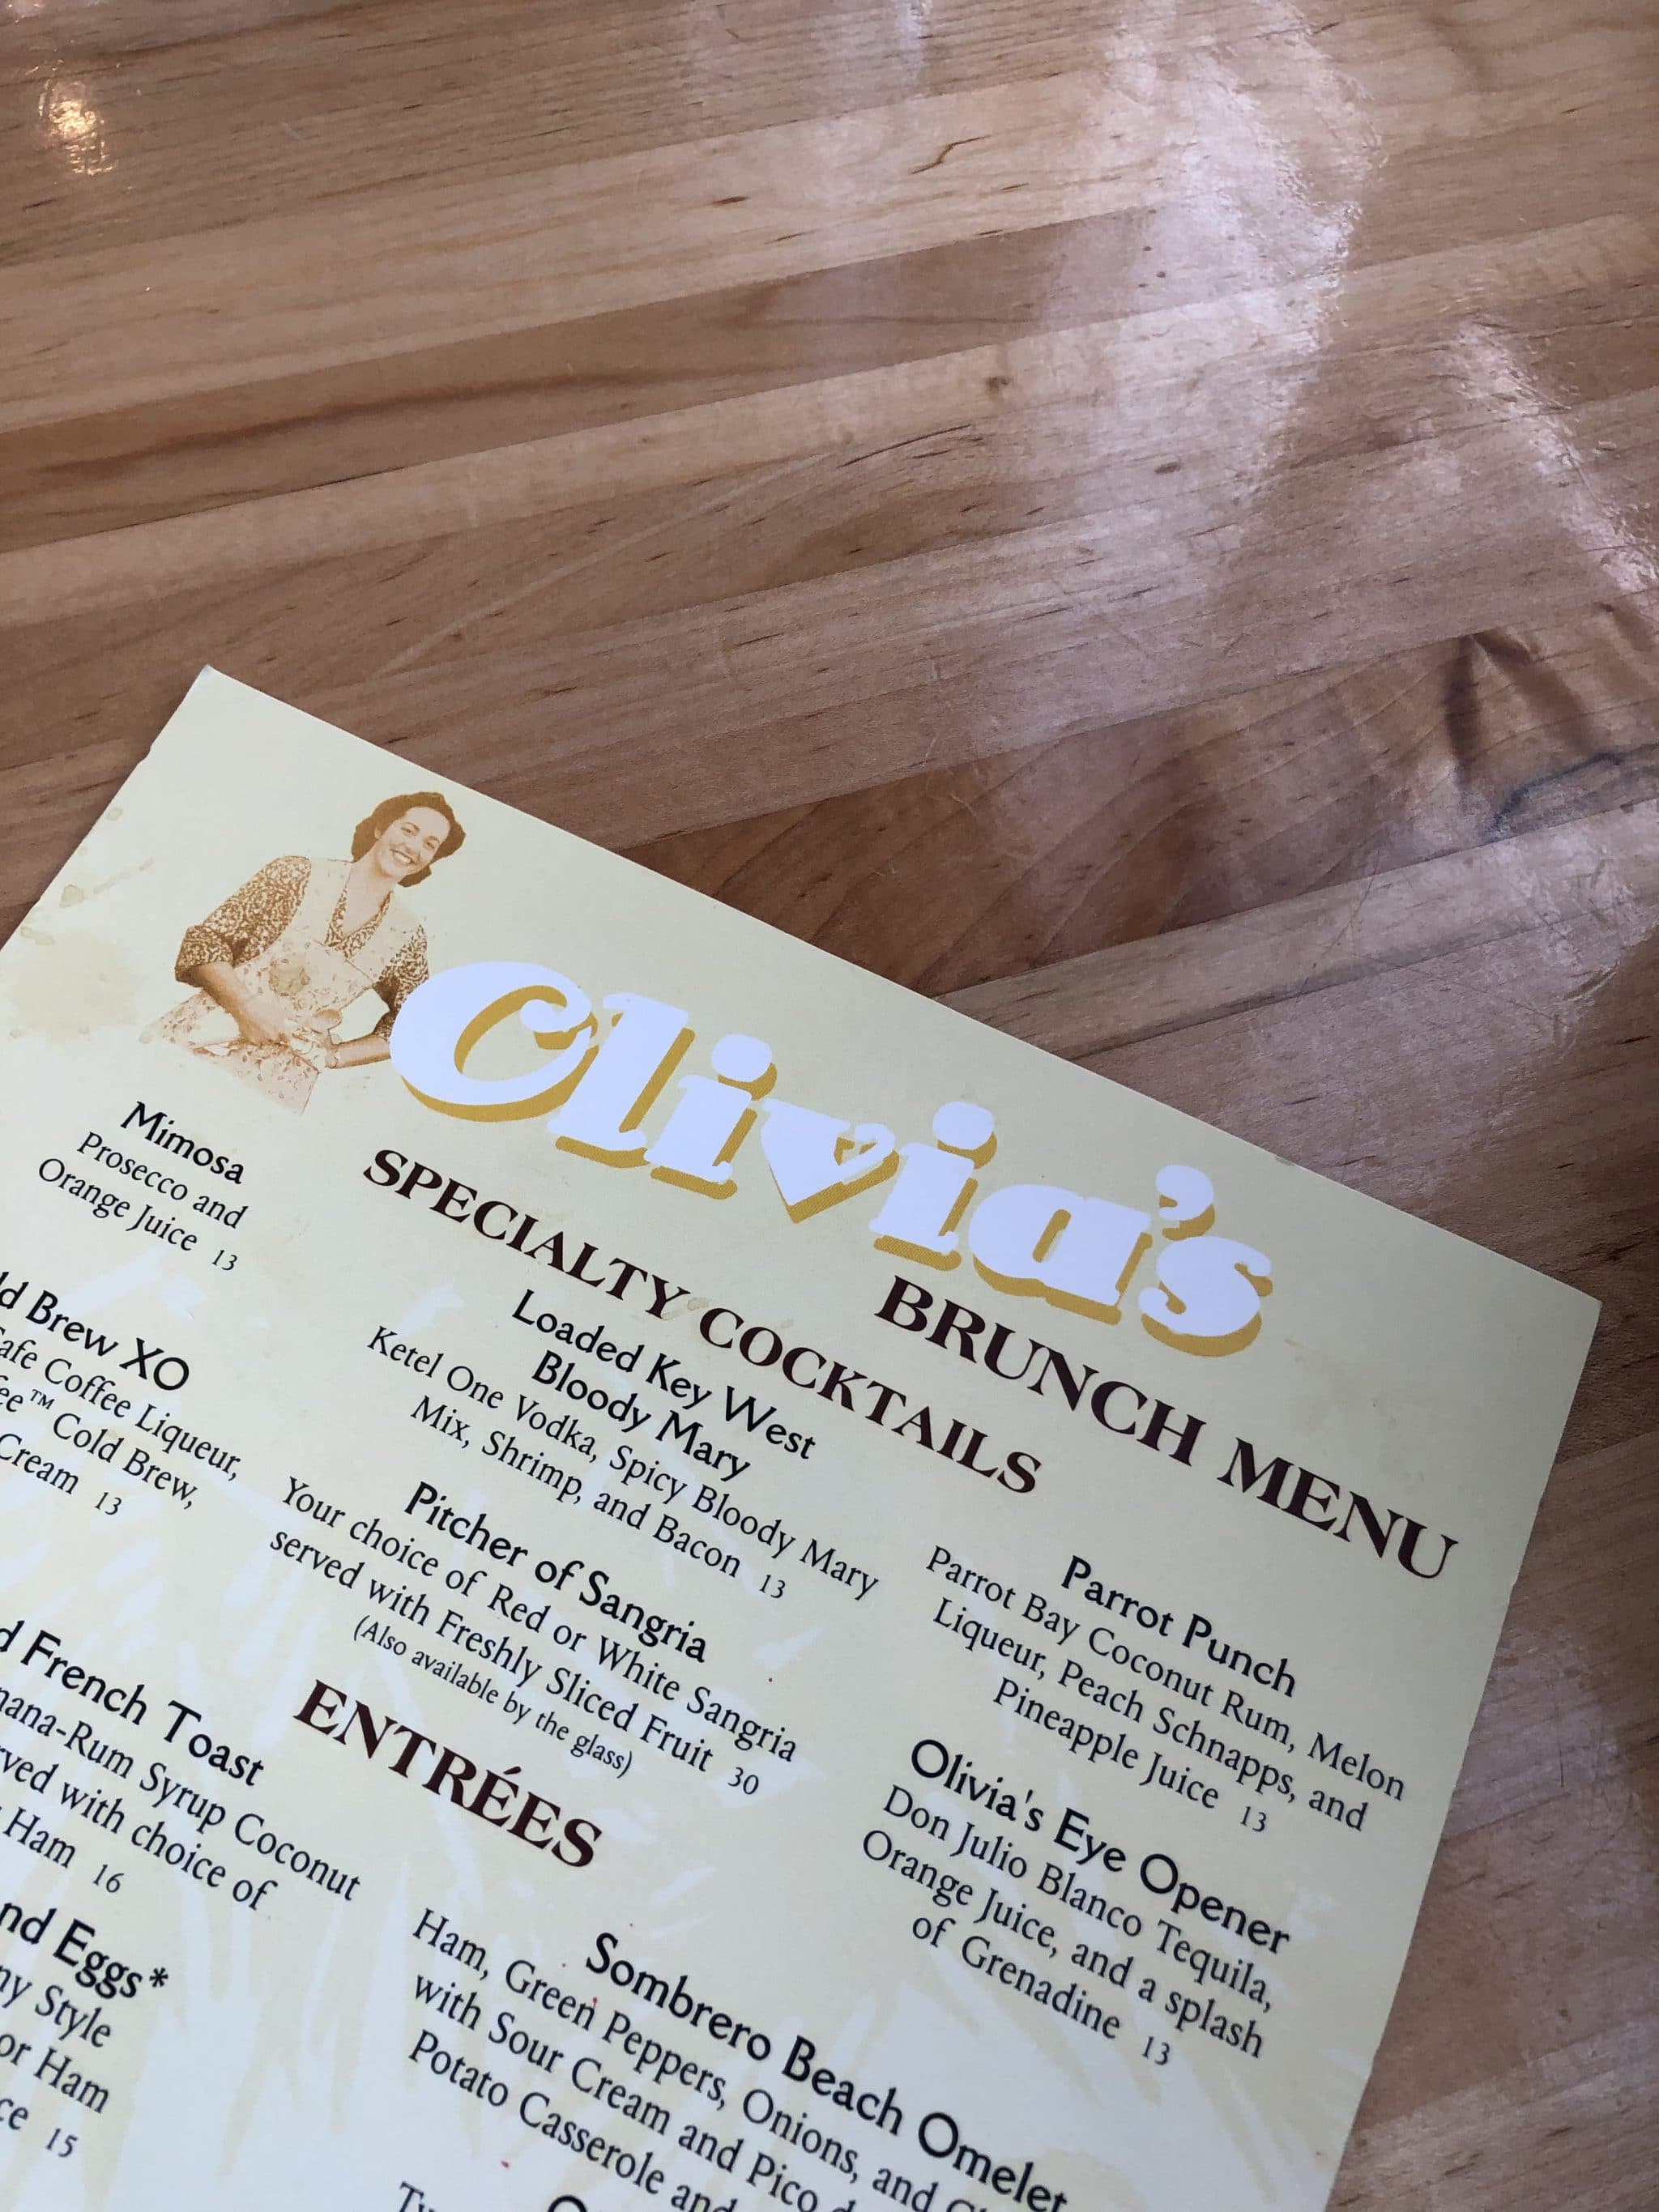 Vegan Brunch at Olivia's Cafe in Disney's Old Key West Resort at Walt Disney World